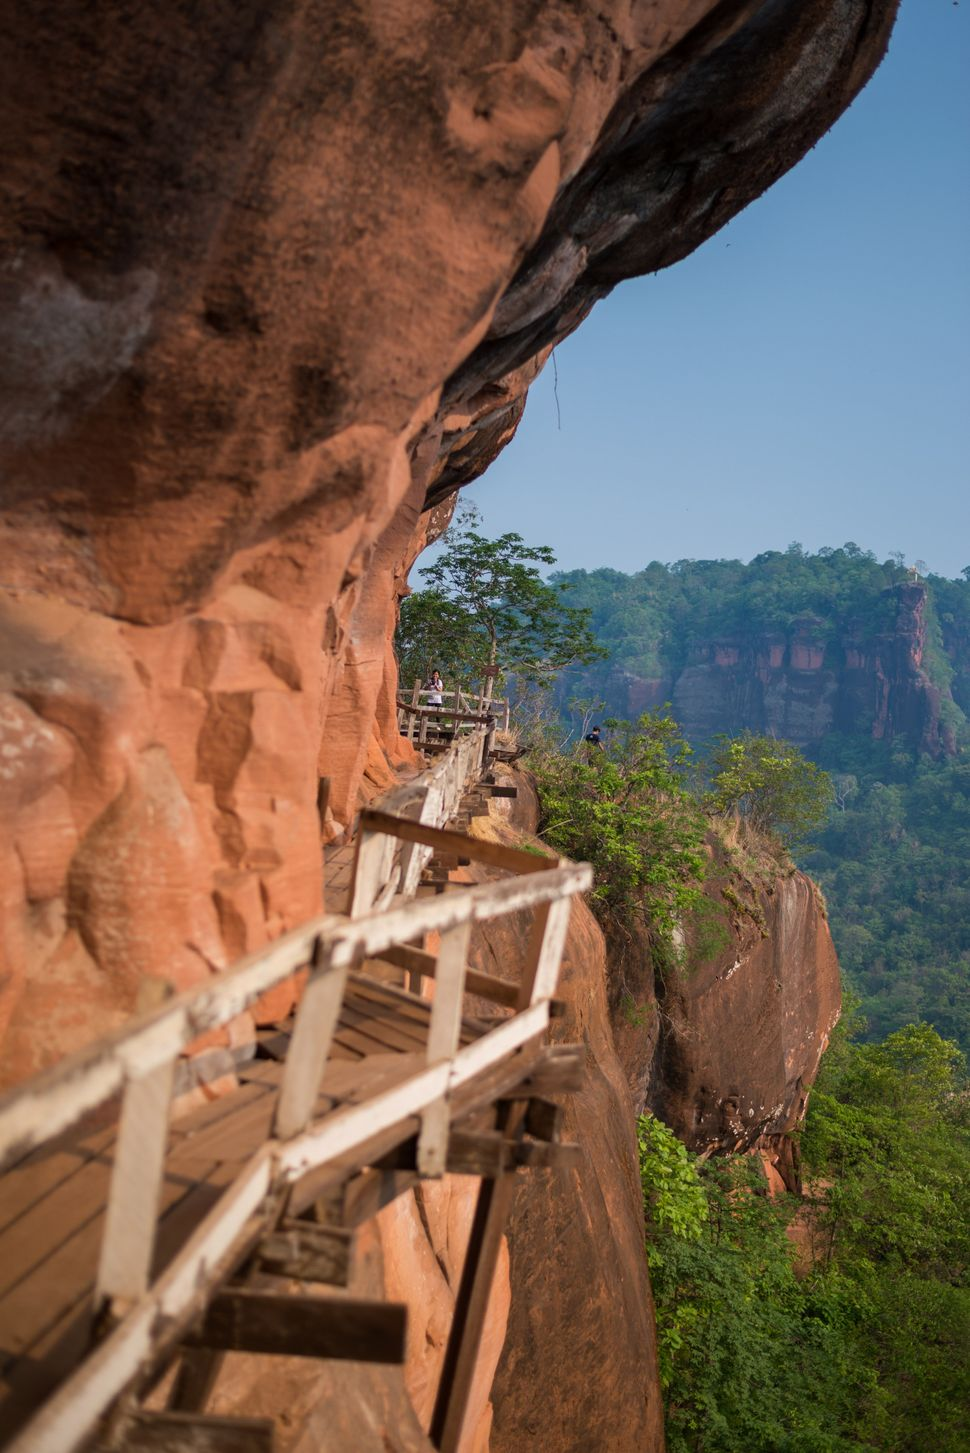 Wooden bridge in red cliffside at Wat Phu Tok mountain in Bueng Kan, Thailand.